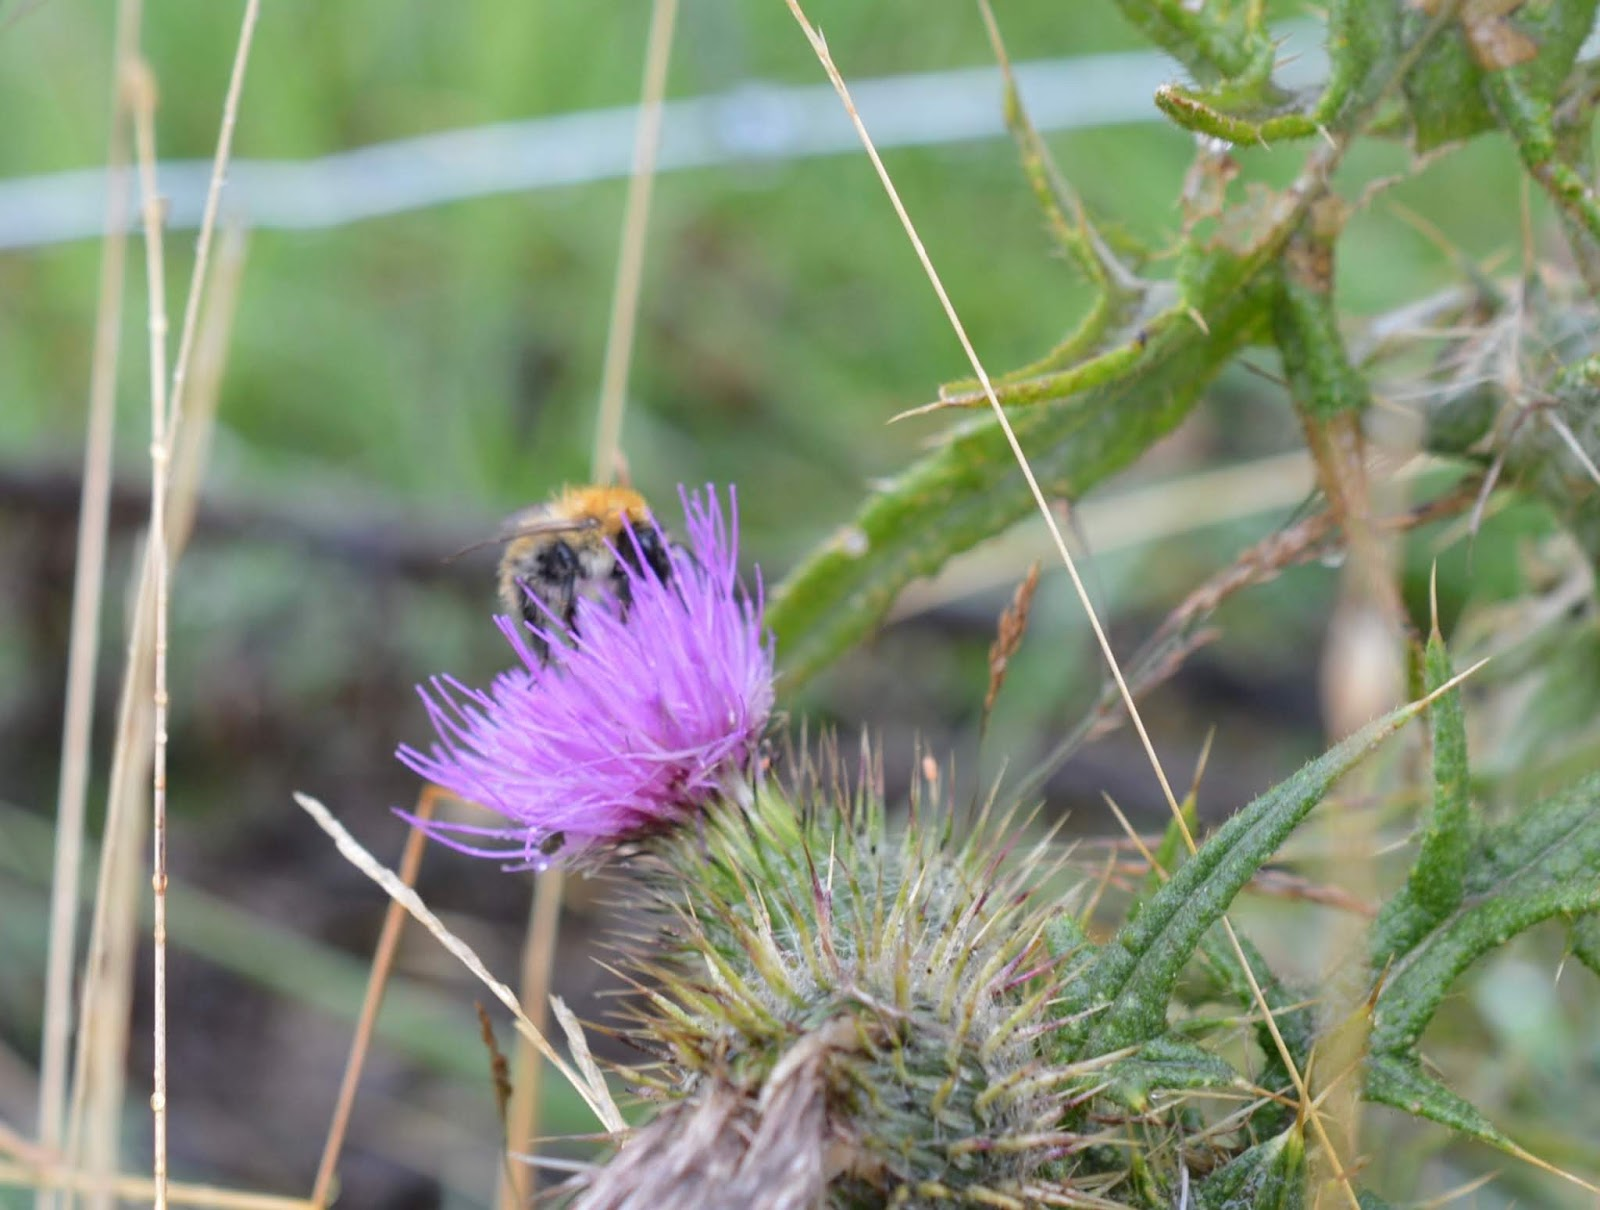 FREE Nature Trail at Derwent Waterside Park, Consett  - wild flowers and bees